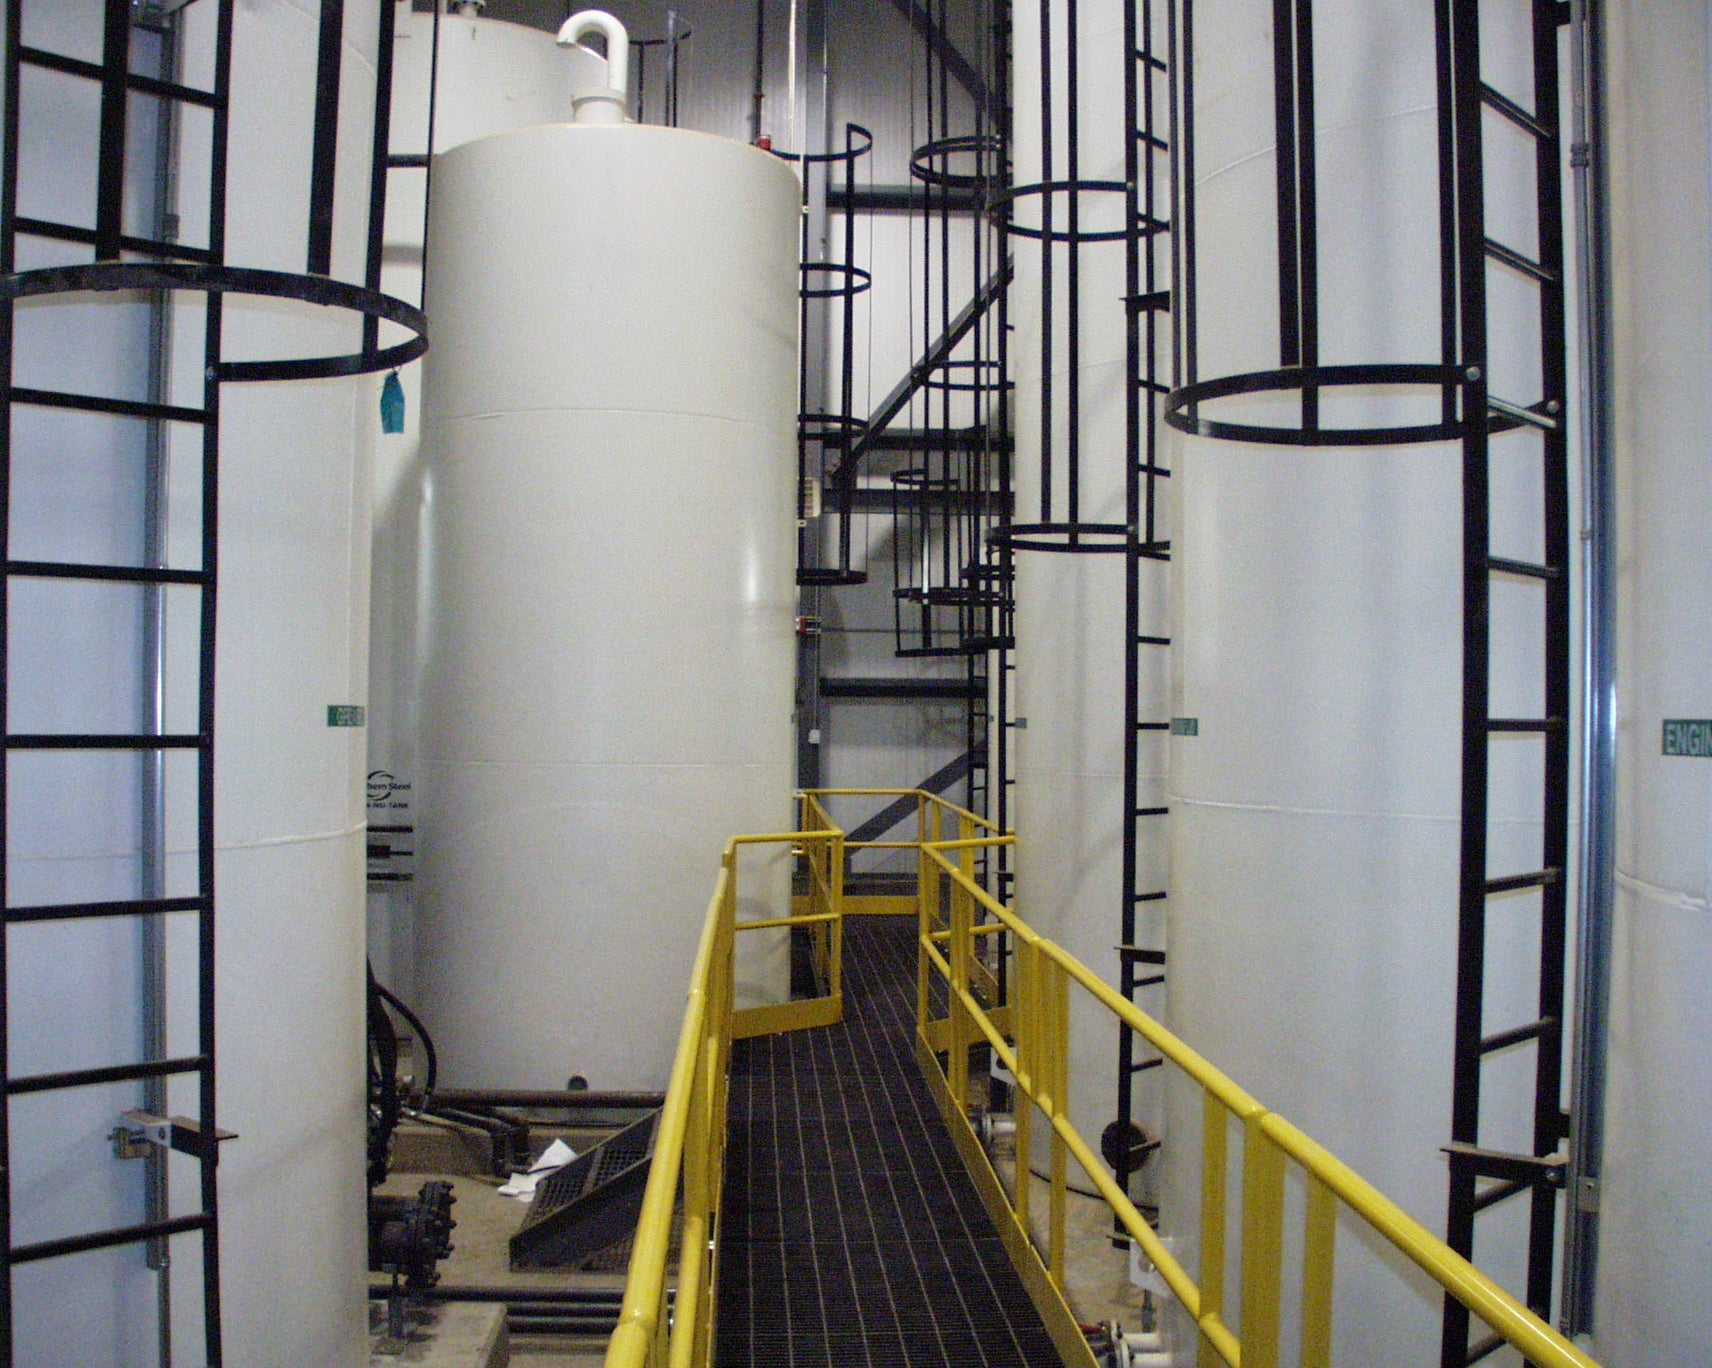 Lubrication Tank Farm with Oil